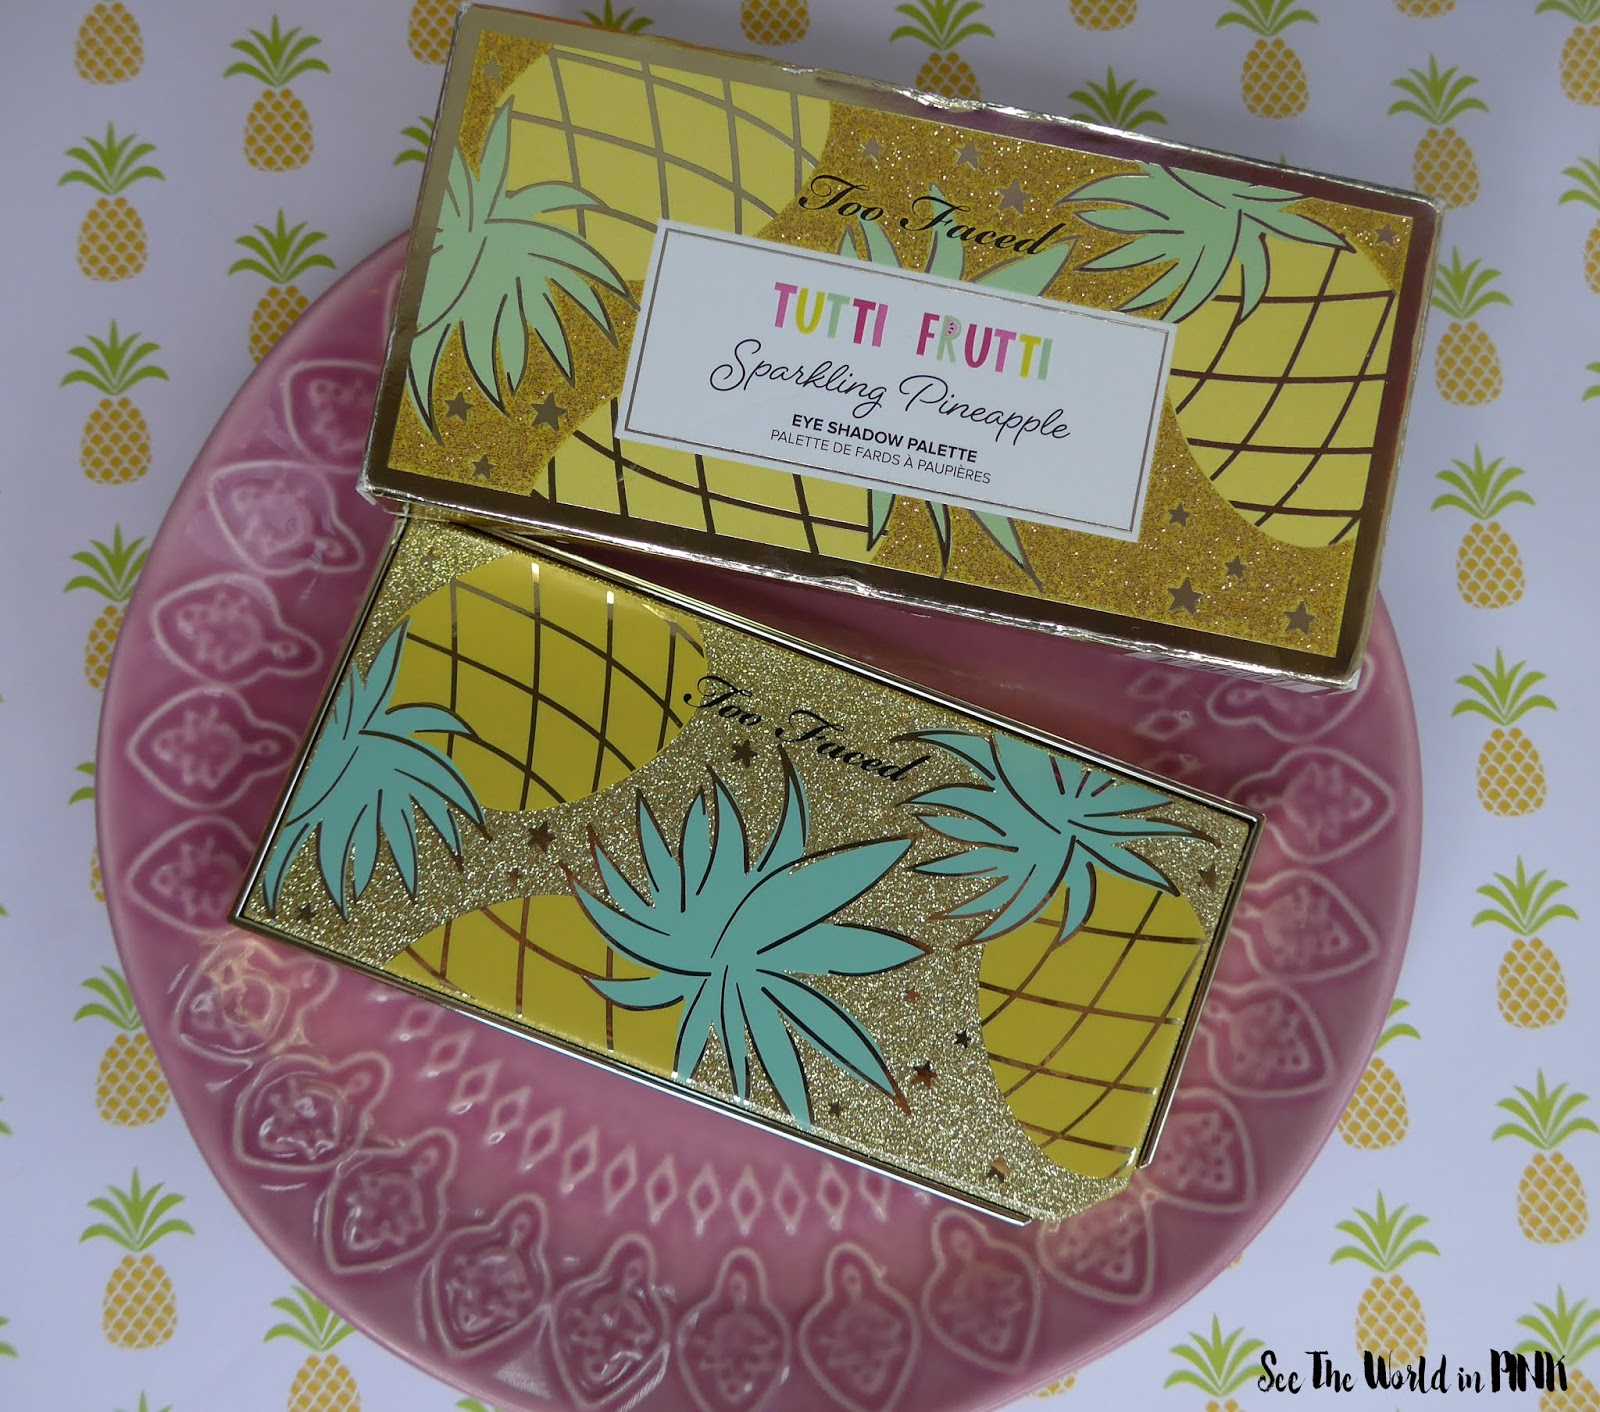 Too Faced Tutti Frutti Collection - It's Bananas Brightening Setting Powder